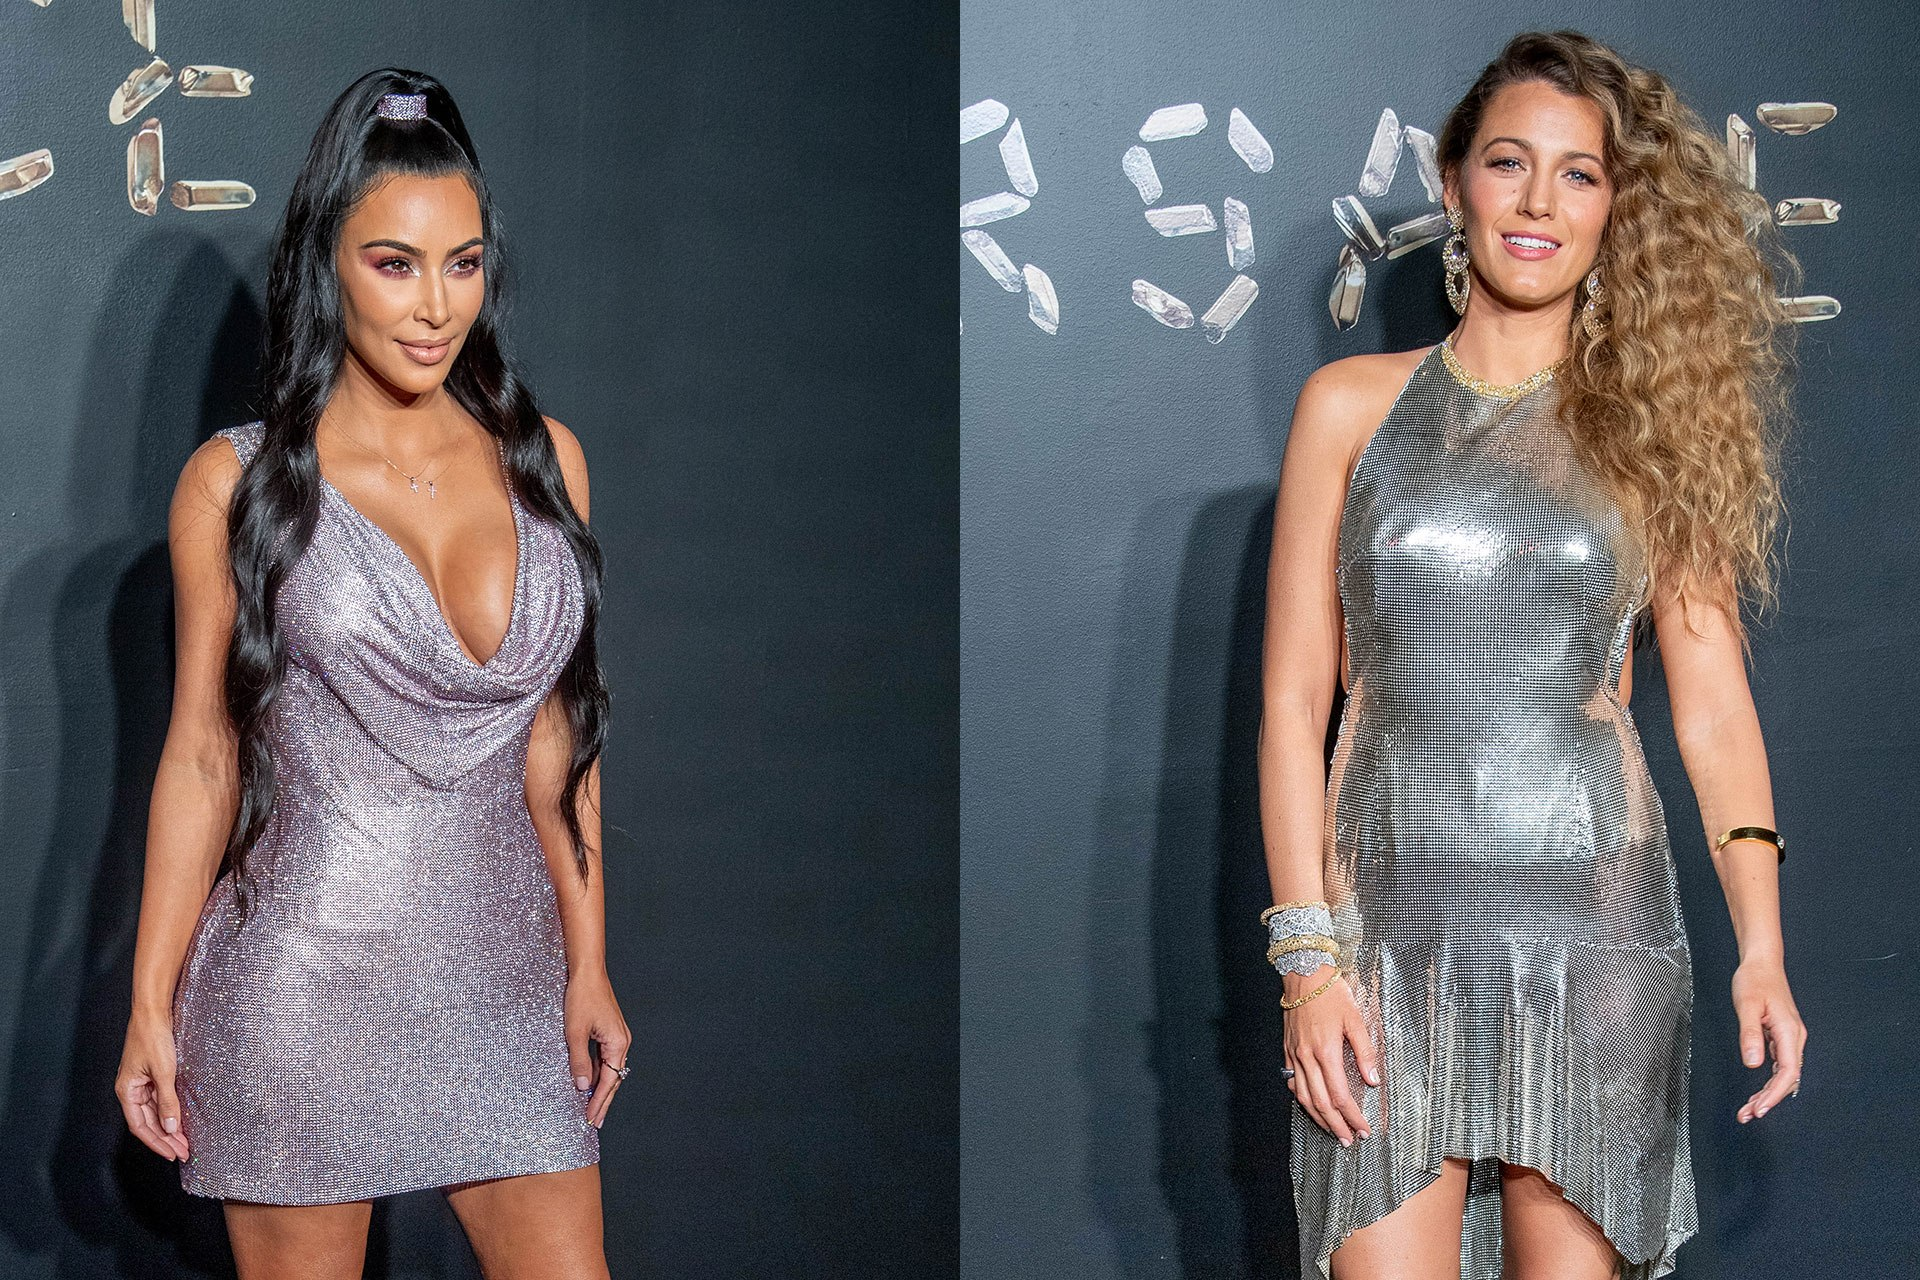 Kim Kardashian West and Blake Lively were twinning at the Versace pre-fall show